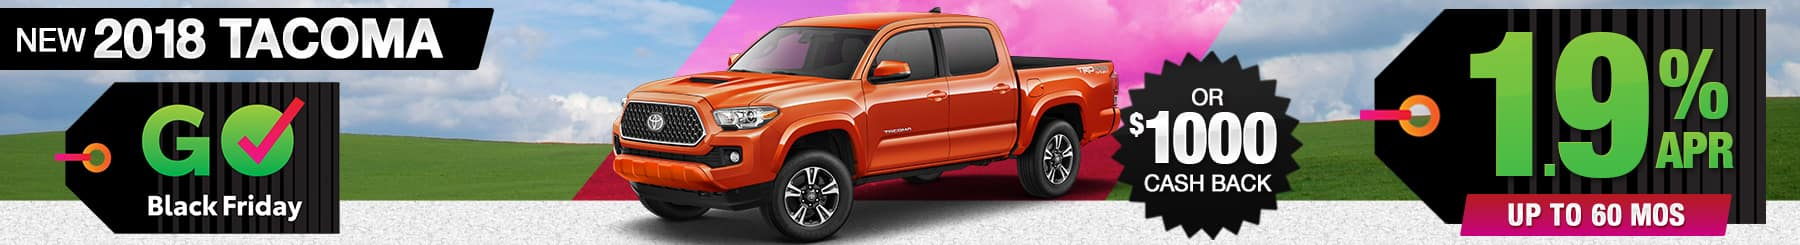 New 2018 Tacoma Finance or Cash Back Special